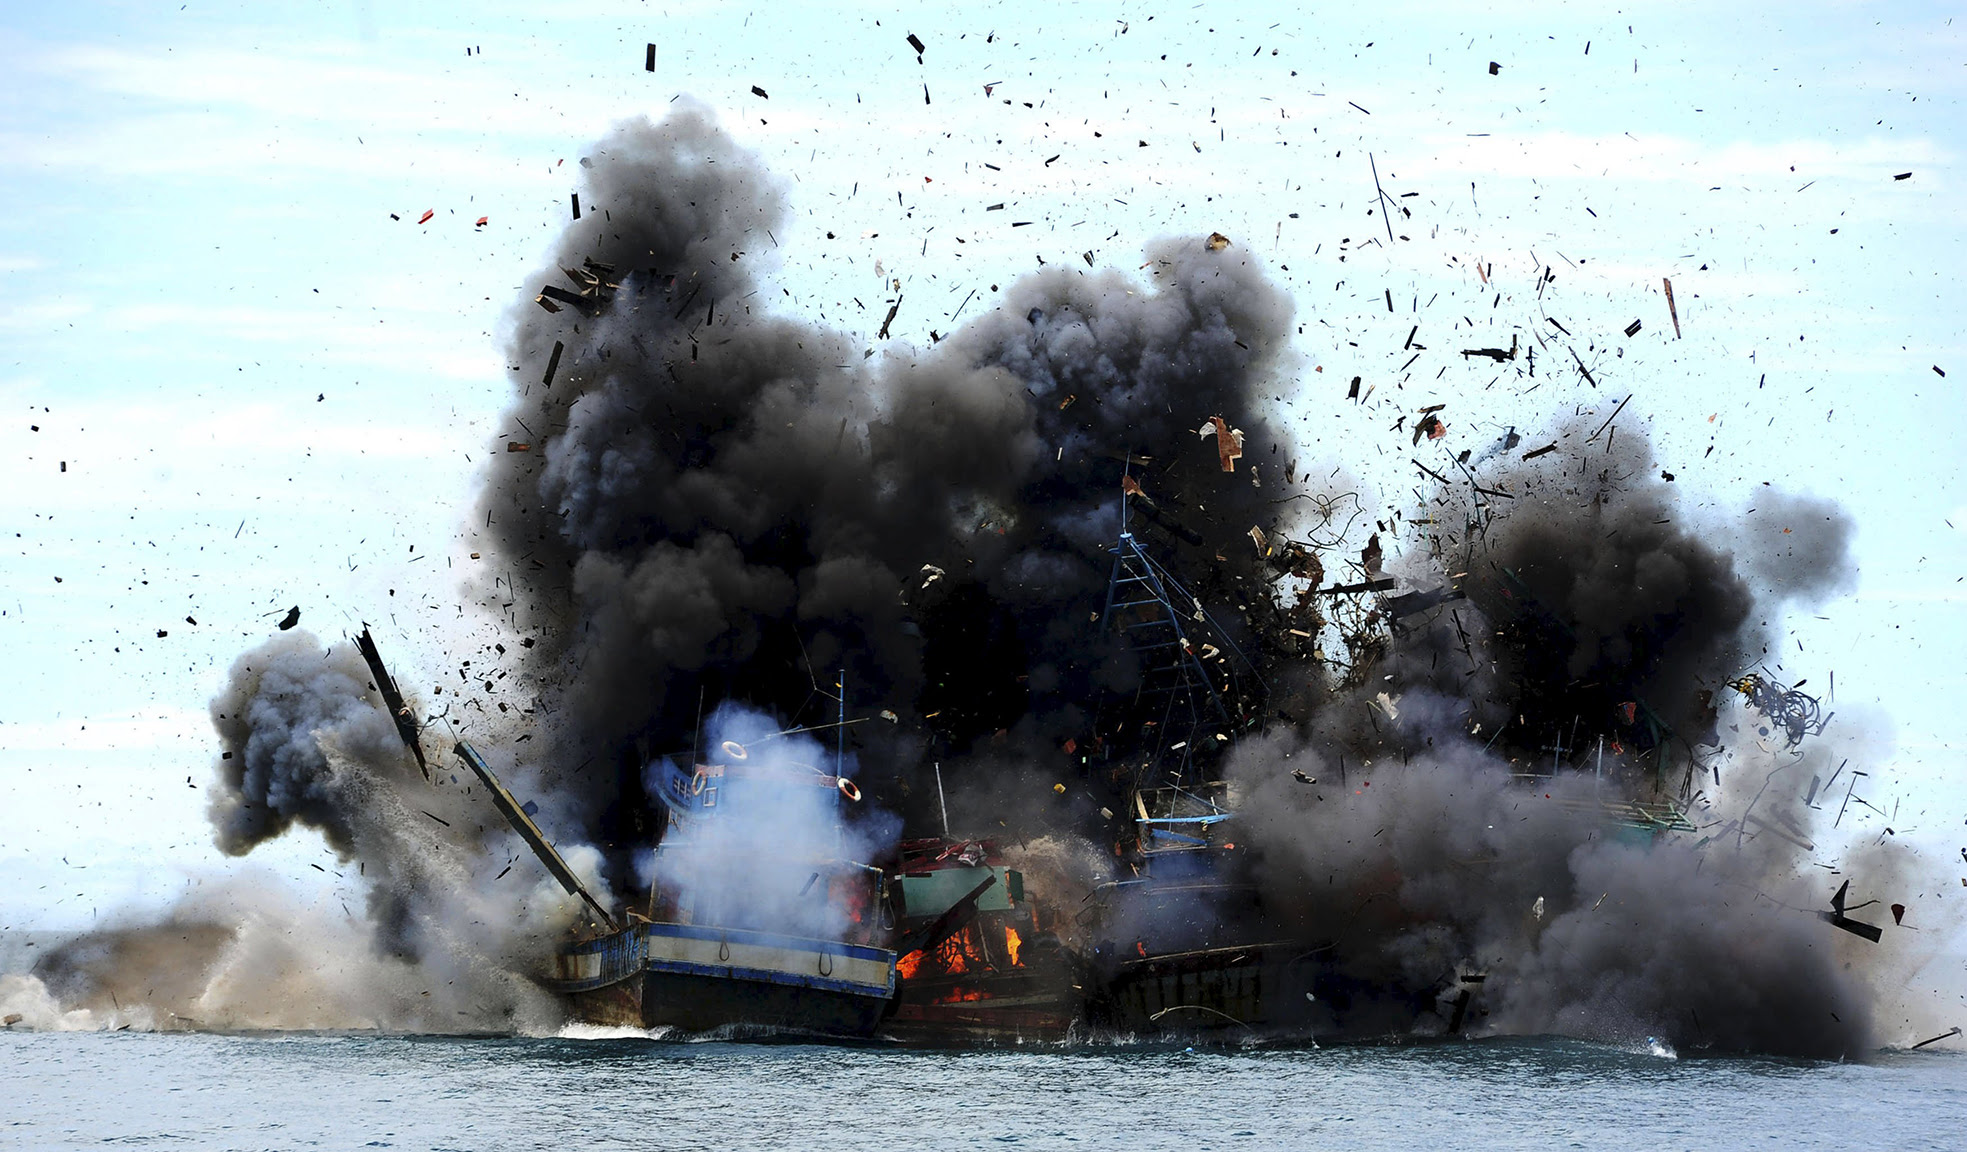 Four of eight confiscated Vietnamese fishing boats are destroyed in Mempawah Regency, West Kalimantan, Indonesia